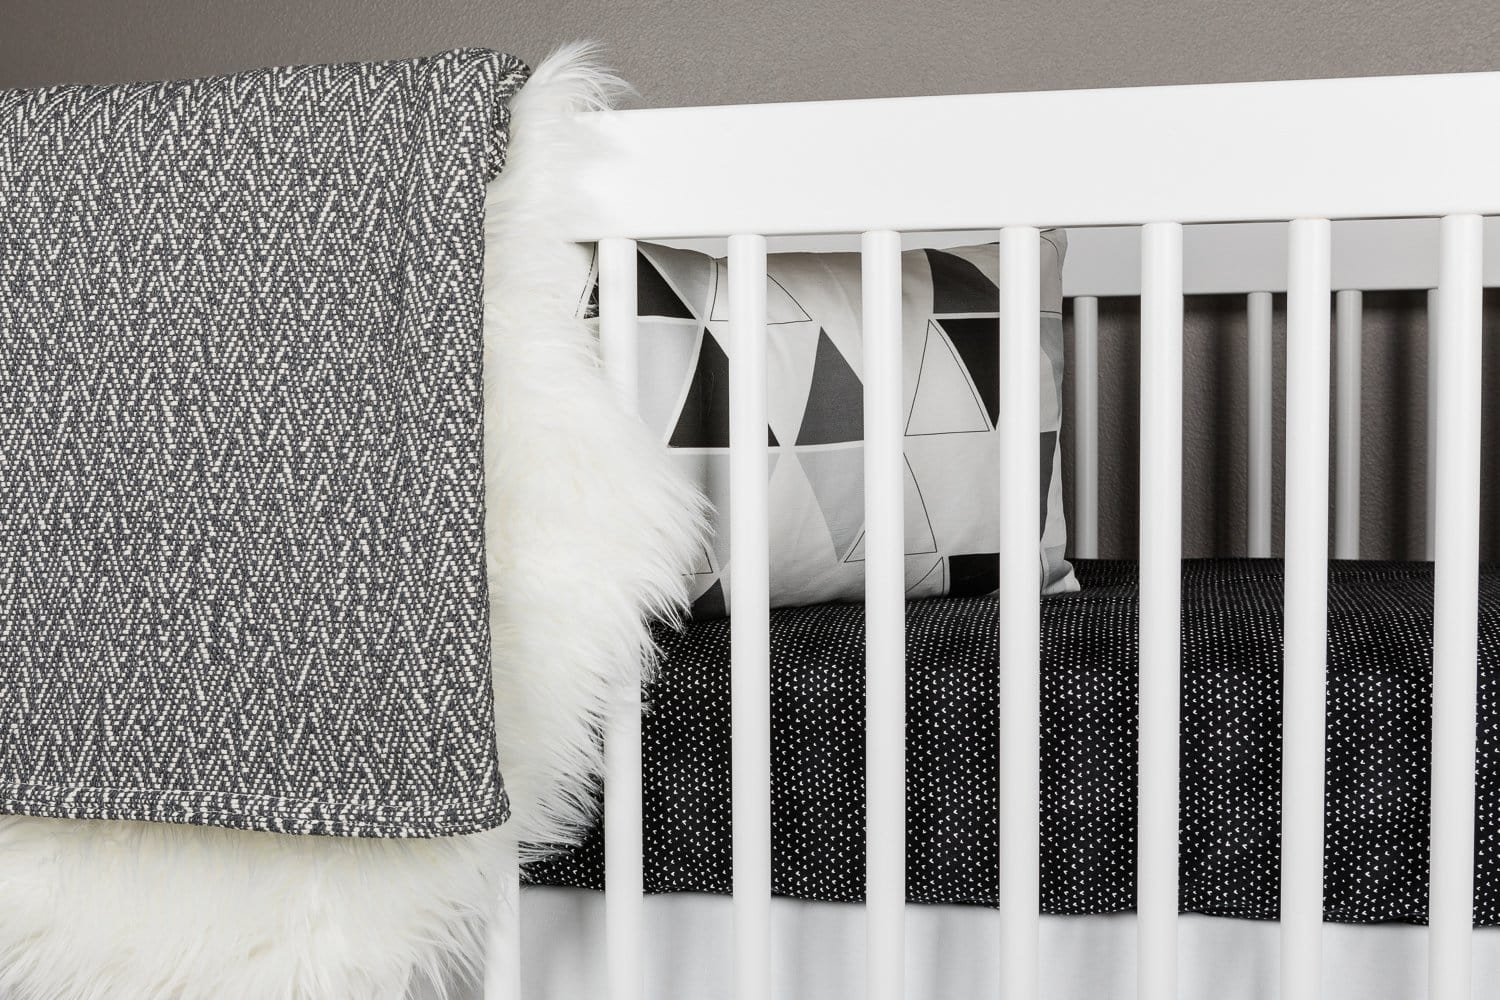 Hearts Crib Bedding Set White on Black-Crib Bedding Set-Jack and Jill Boutique